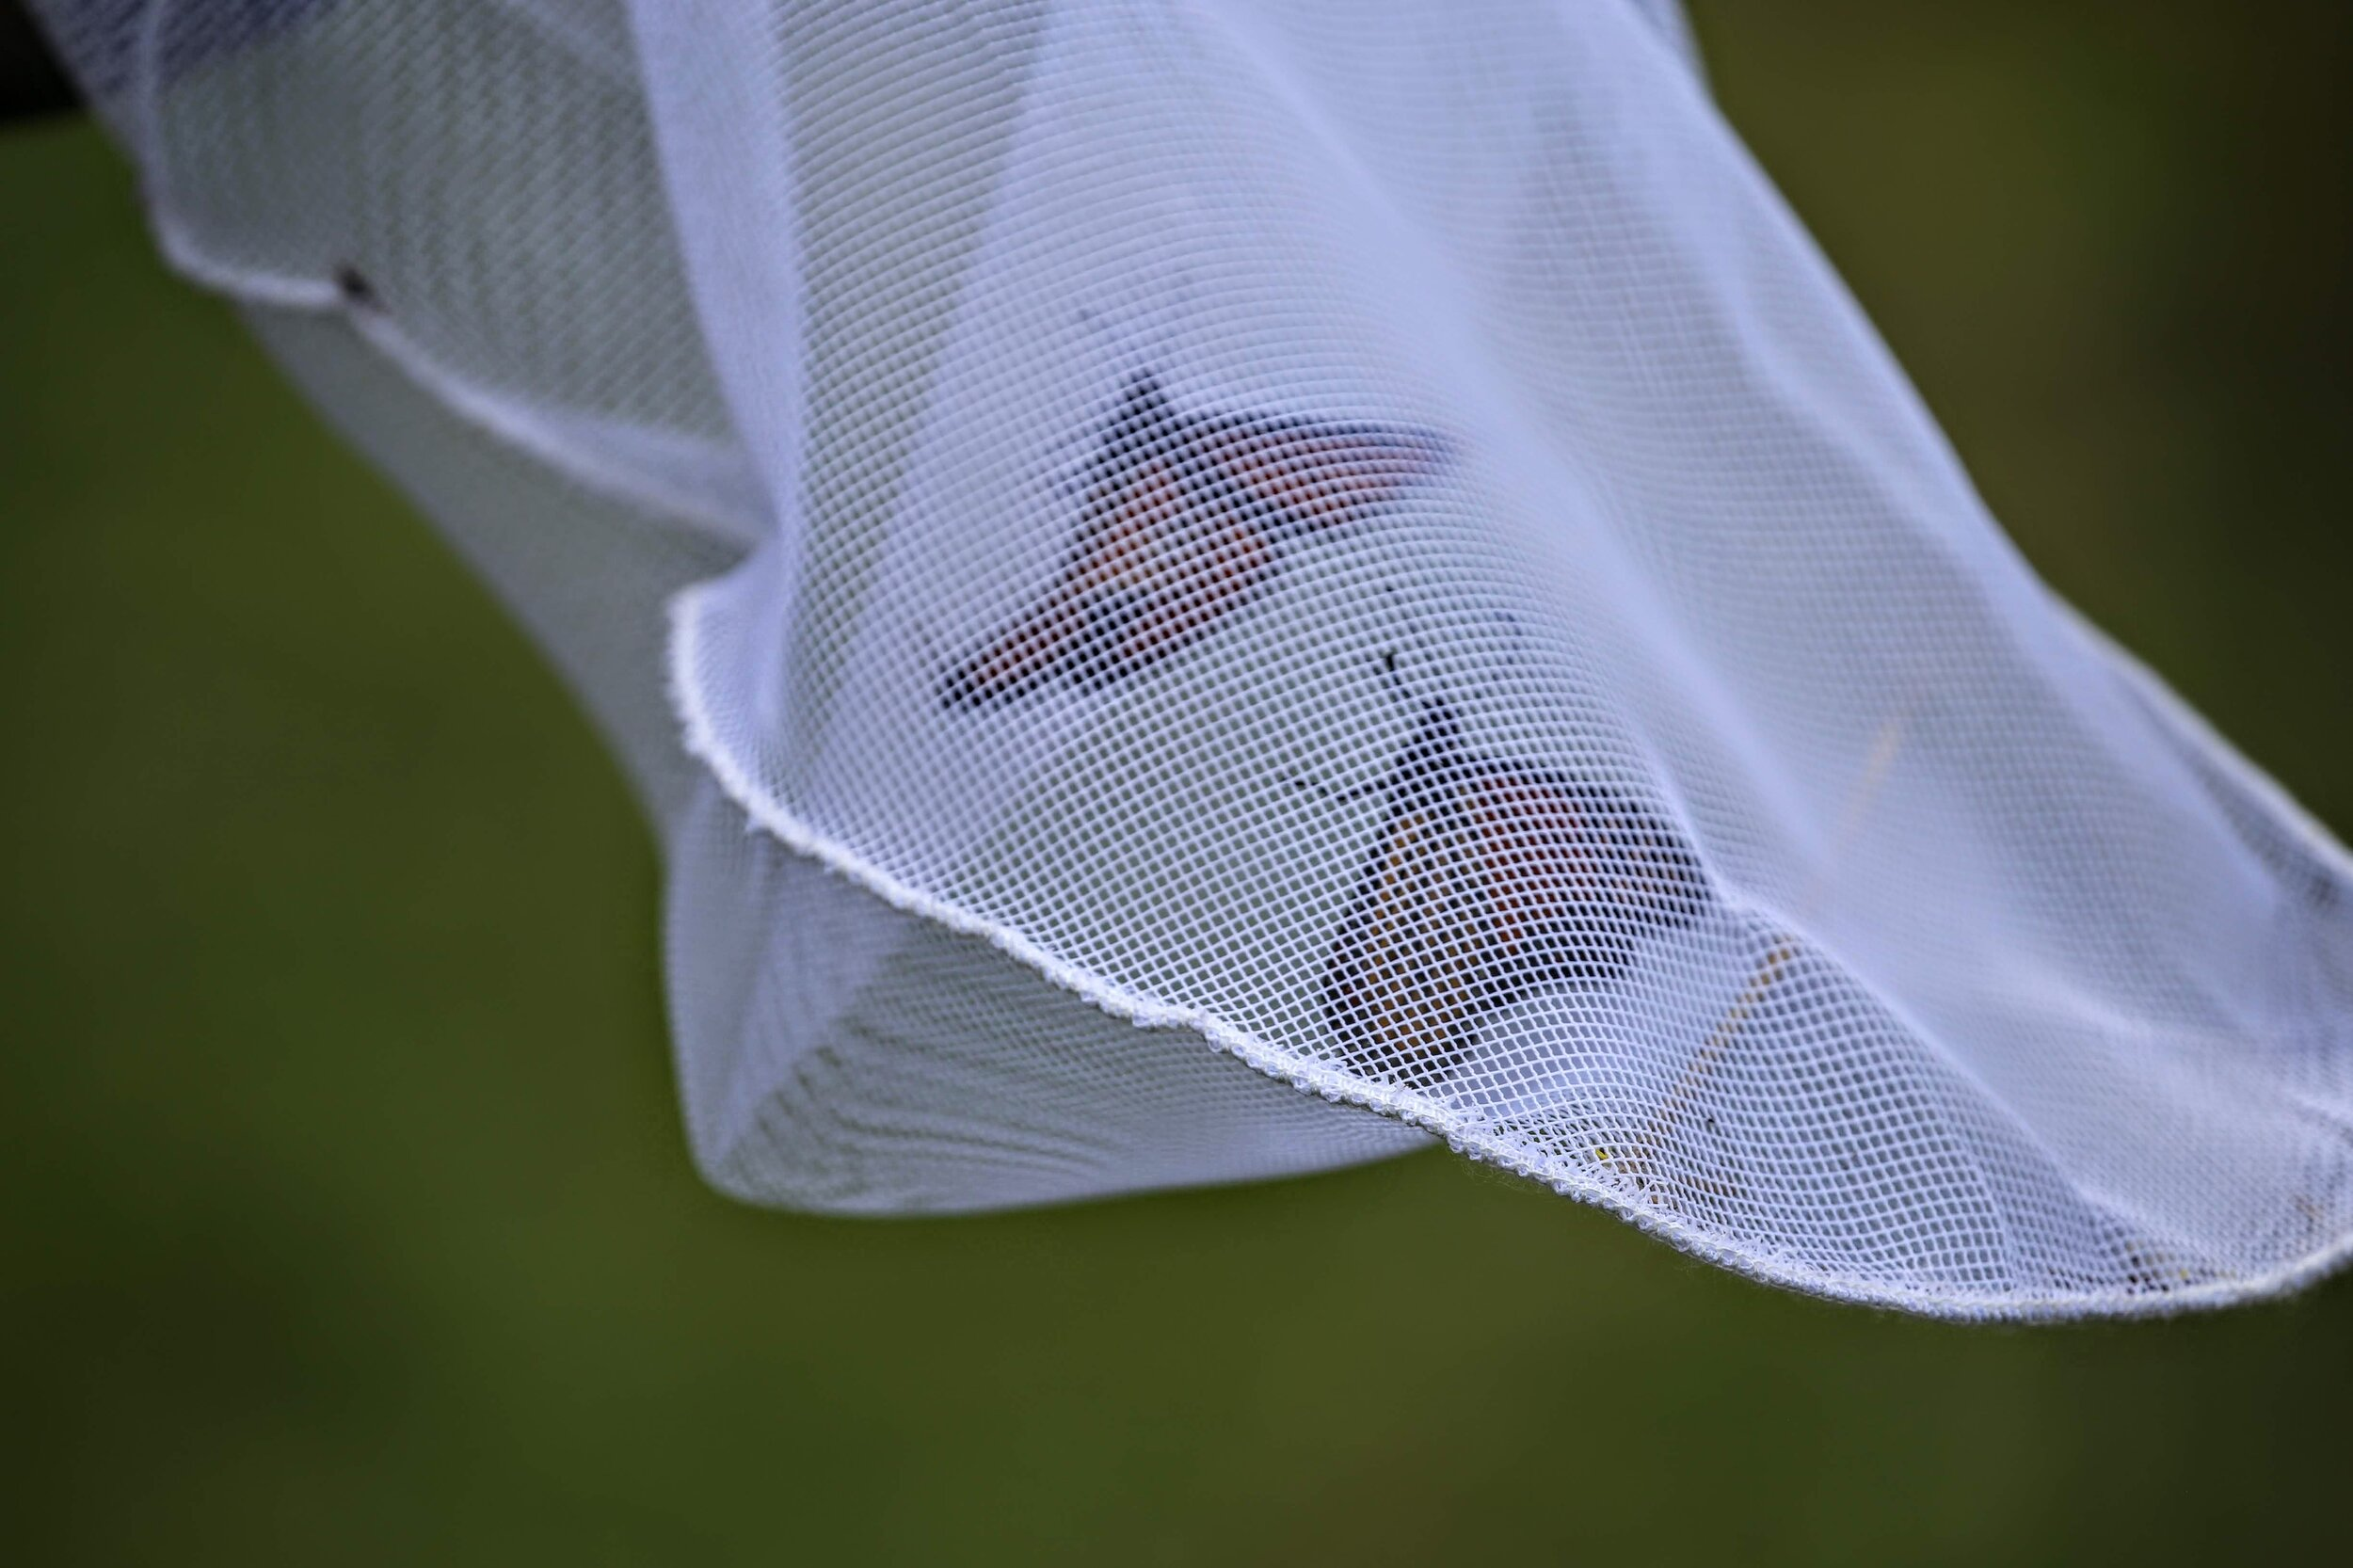 Monarchs in a net will be carefully extracted and tagged with a unique identifier sticker. Photo by Ruth Smith